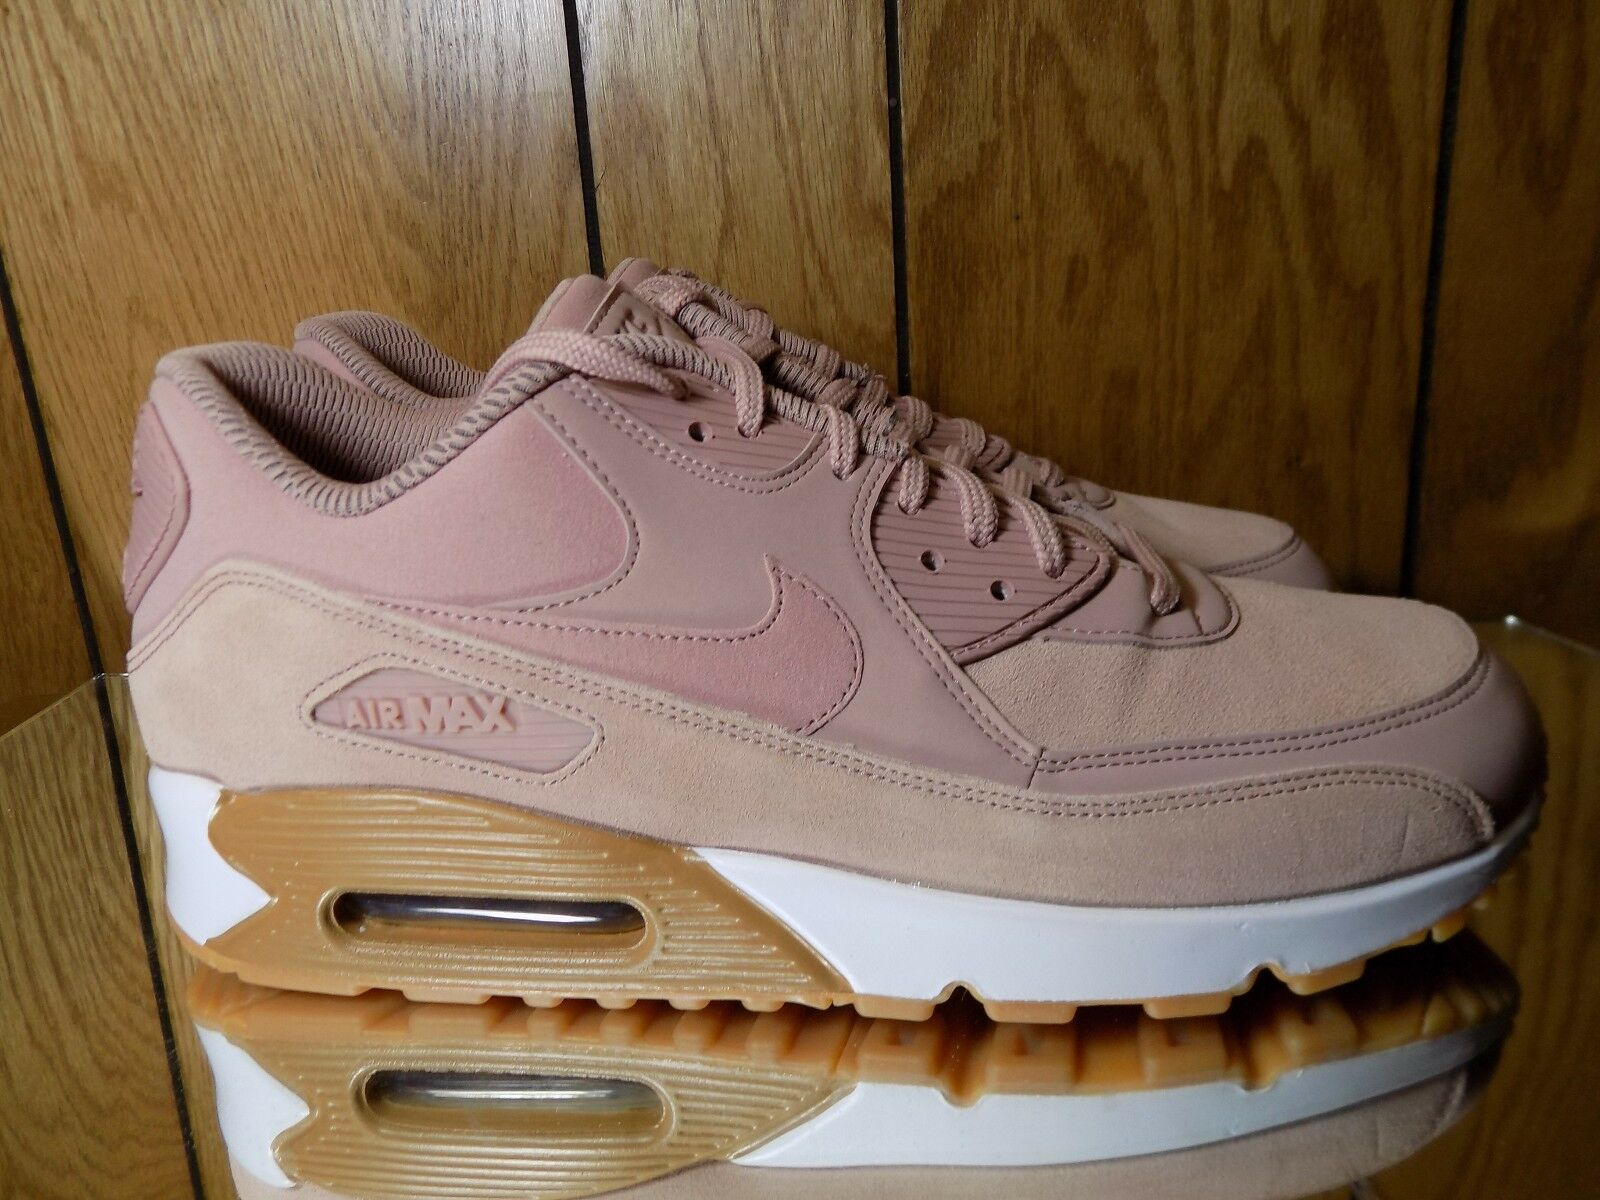 Nike SE WMNS Air Max 90 SE Nike lifestyle sneakers NEW pink brown 881105-601 s. 10.5 b1ae65